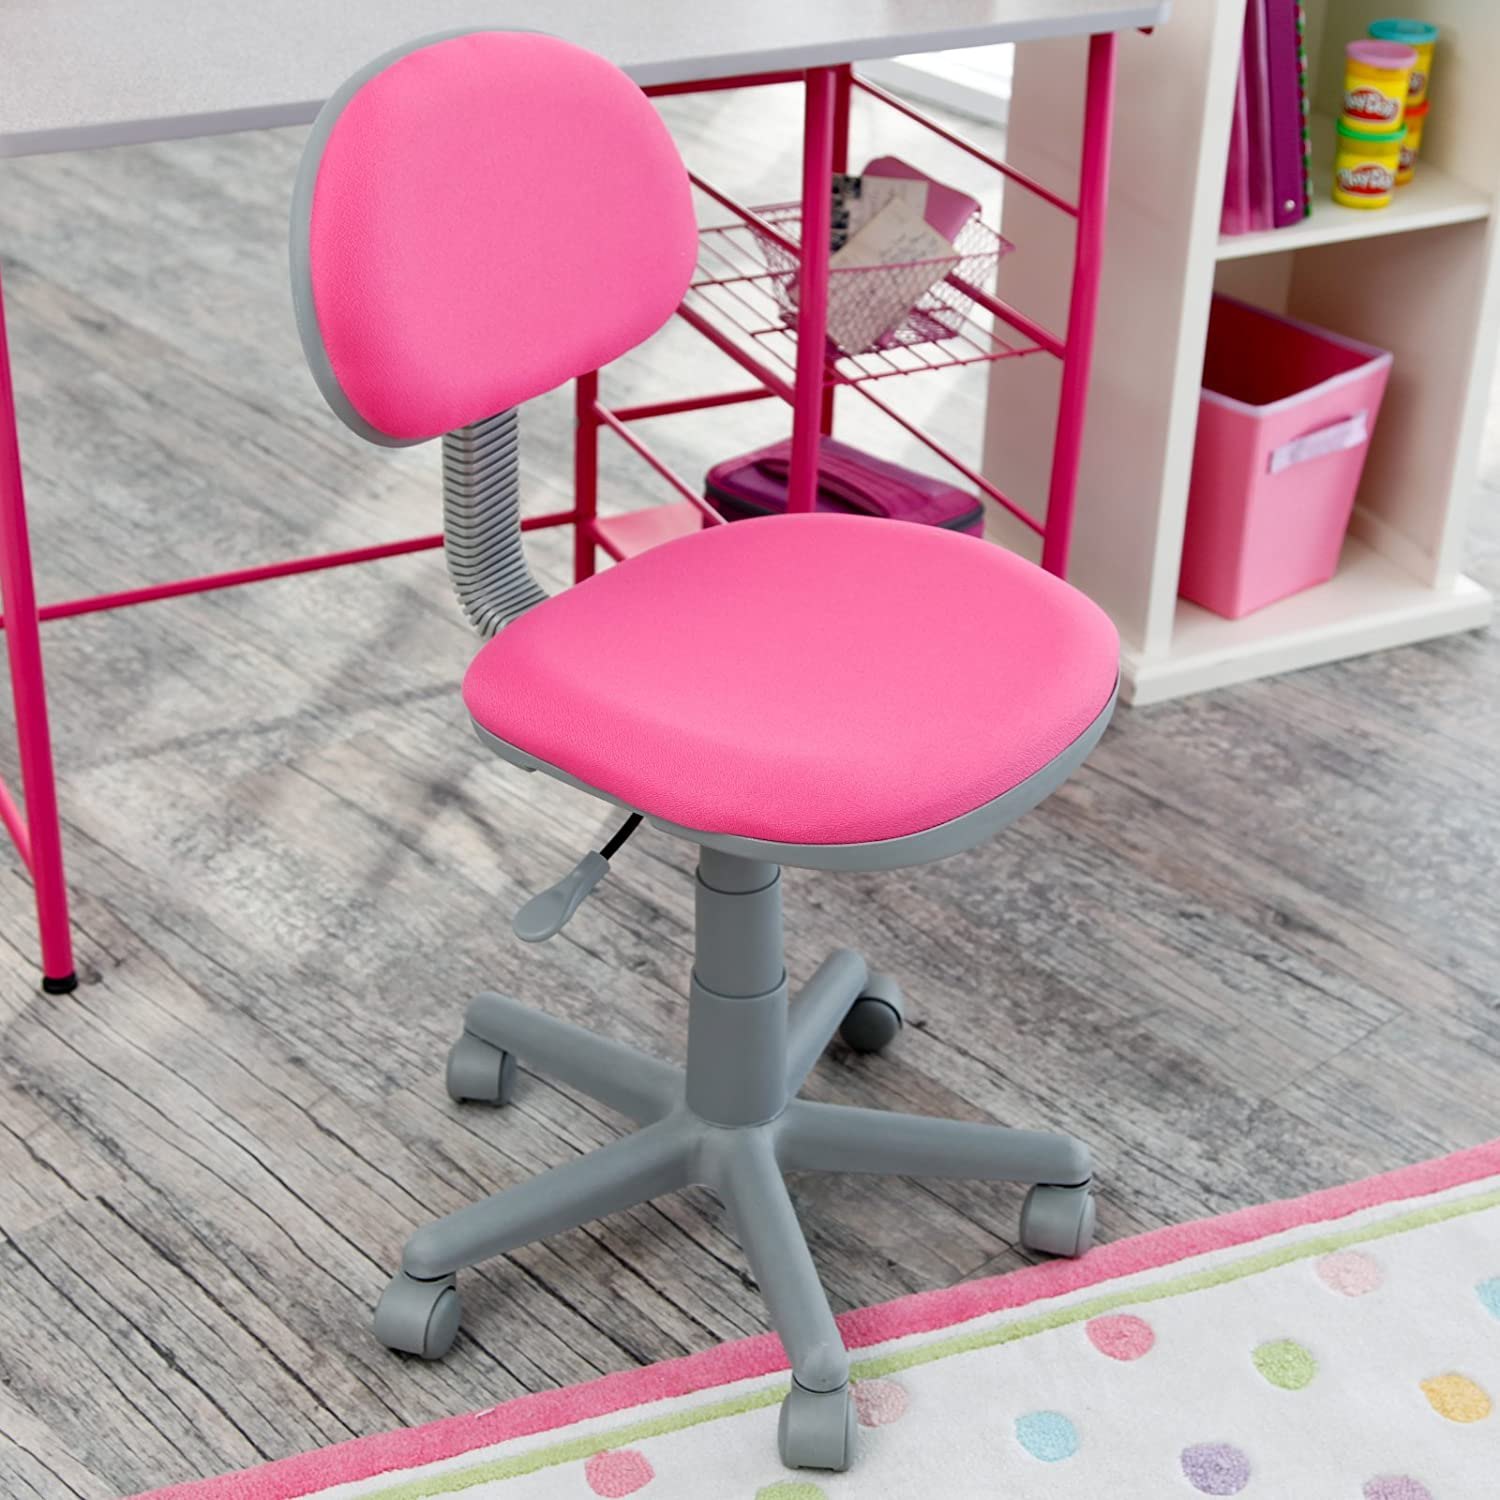 Luxury Desk Chairs for Kids Unique